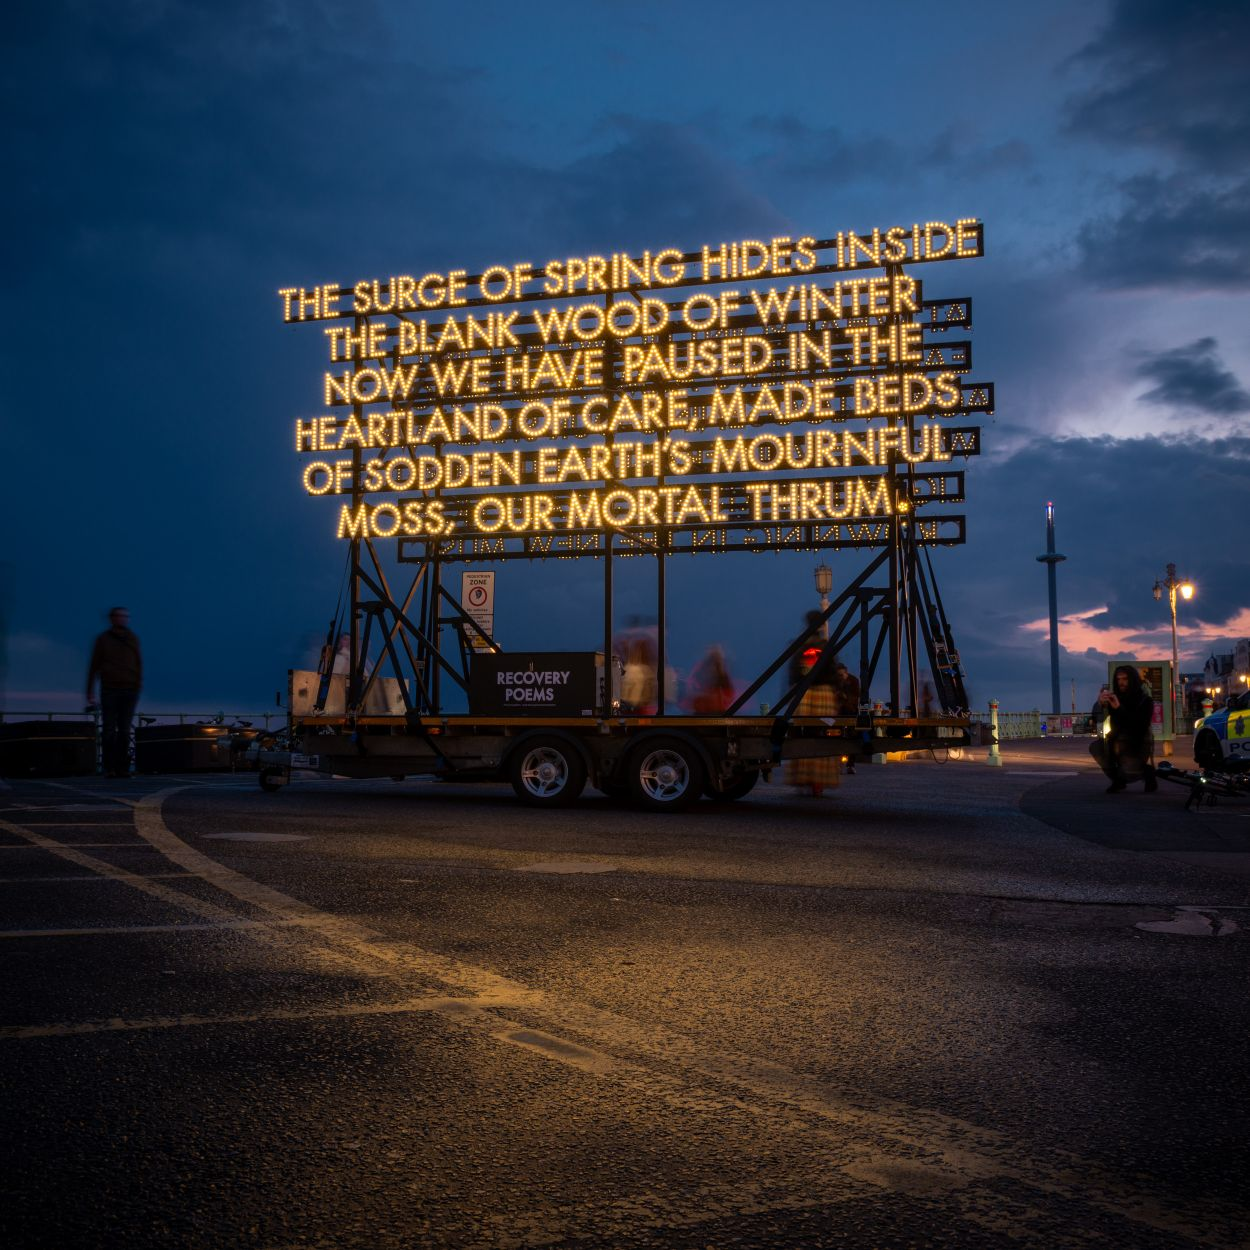 Recovery Poem, illuminated against an evening sky